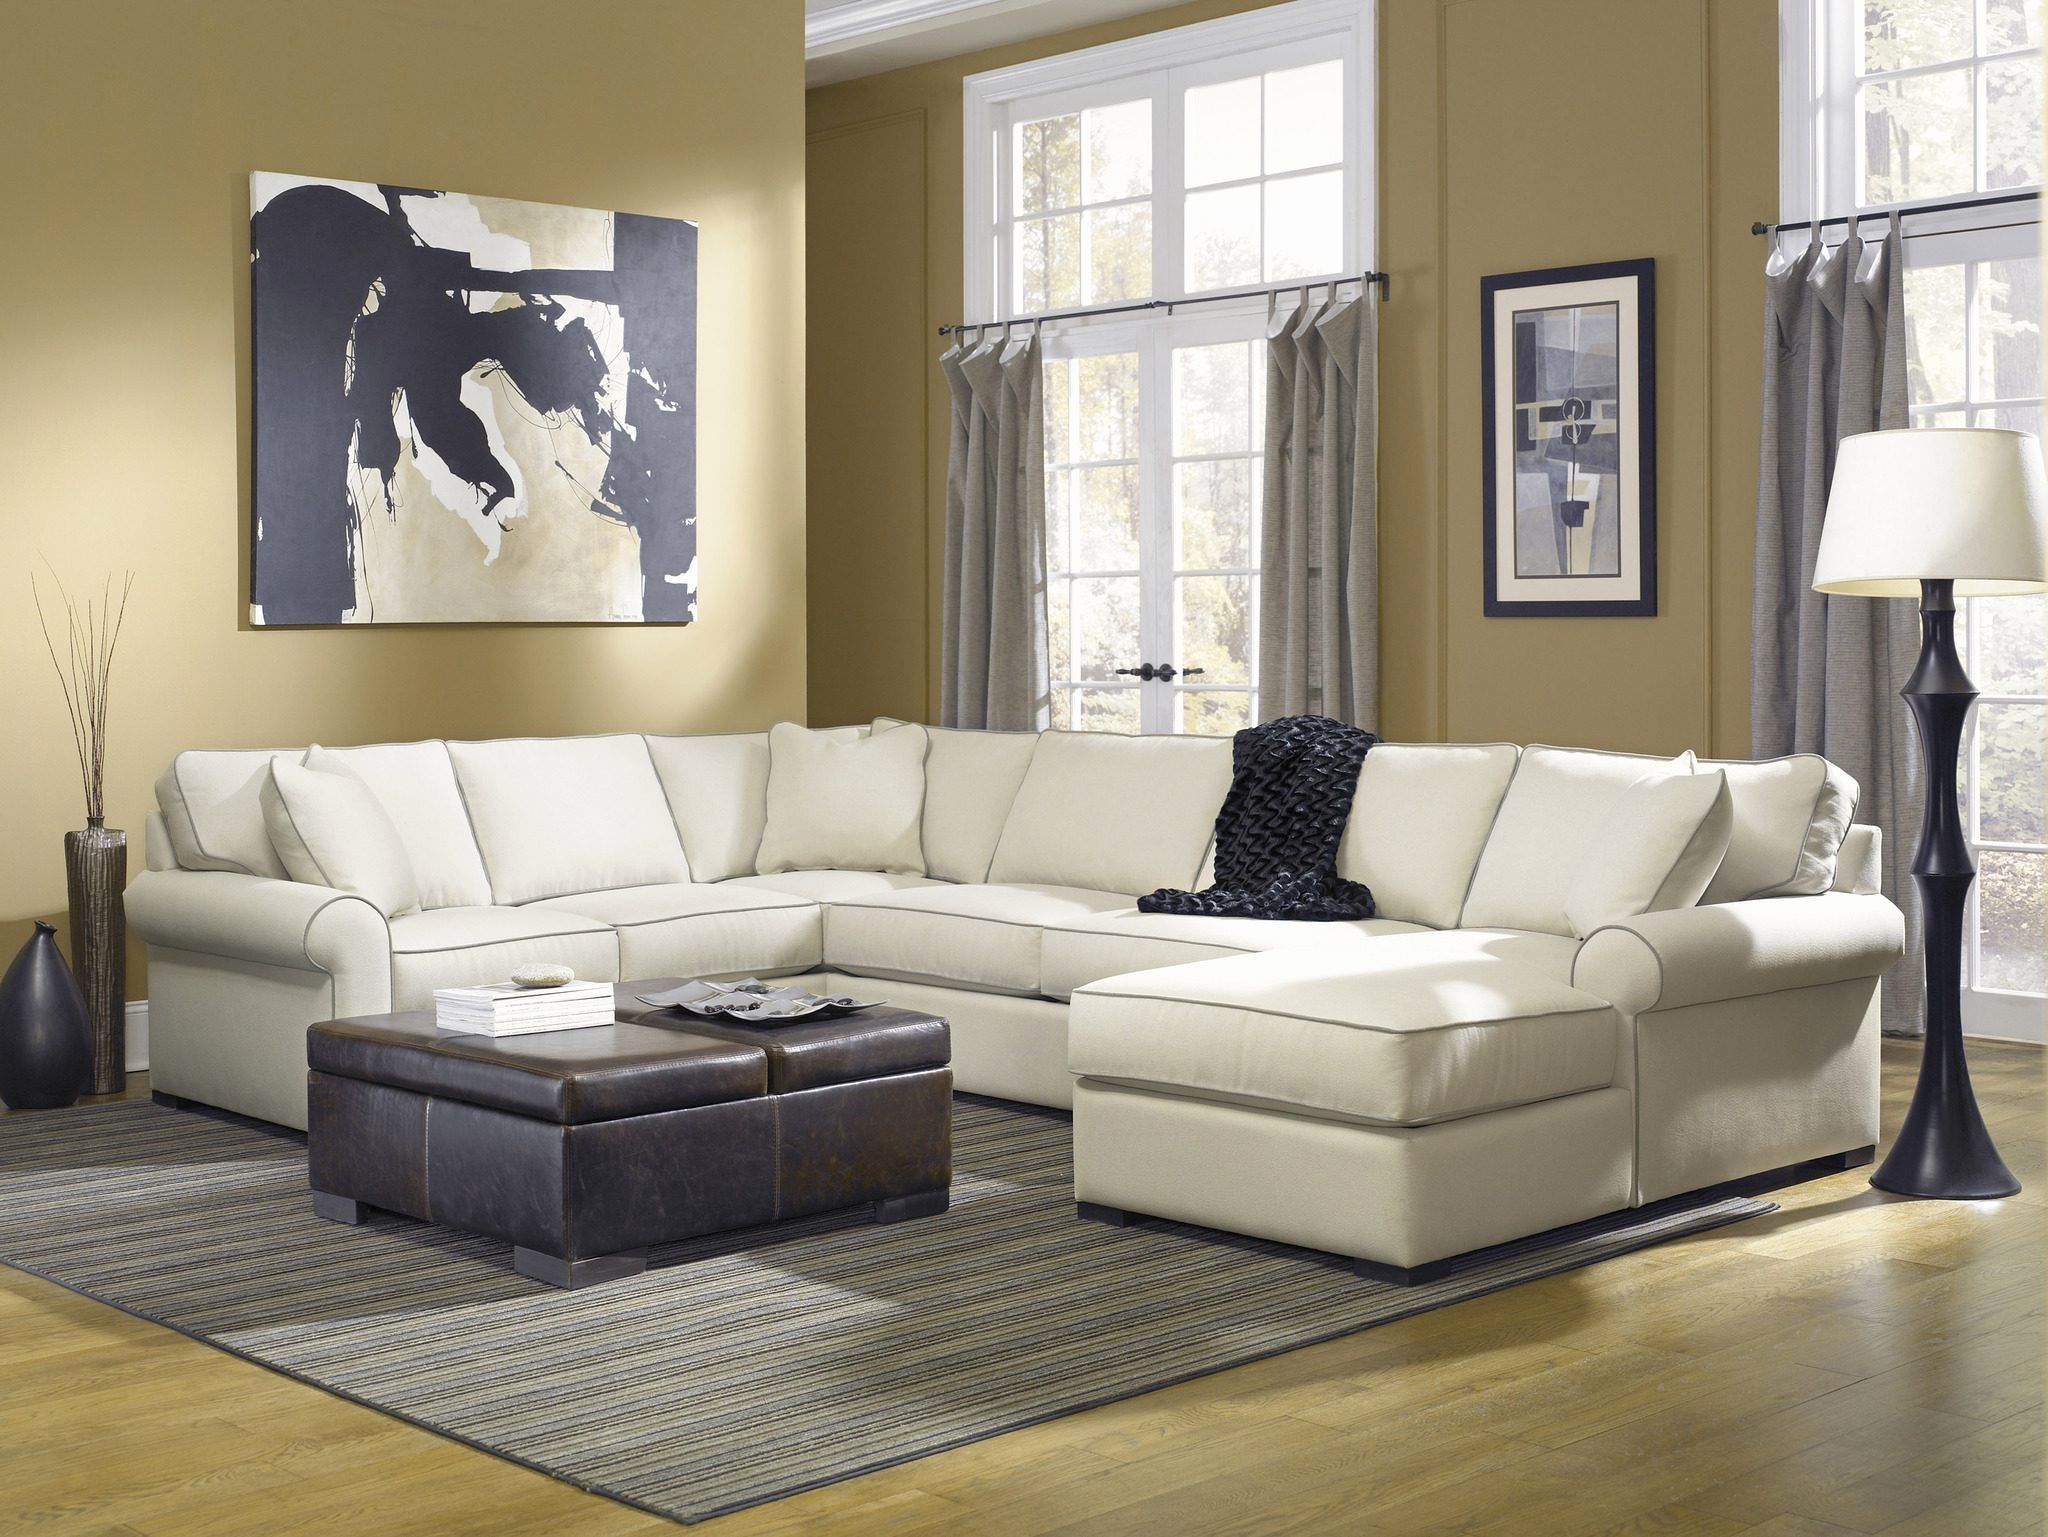 Best Of Down Filled Sectional Sofa Pictures Down Filled Sectional Sofa Best Of Furniture Robert Michael Furnit Custom Sectional Sofa Sectional Sofa Custom Sofa